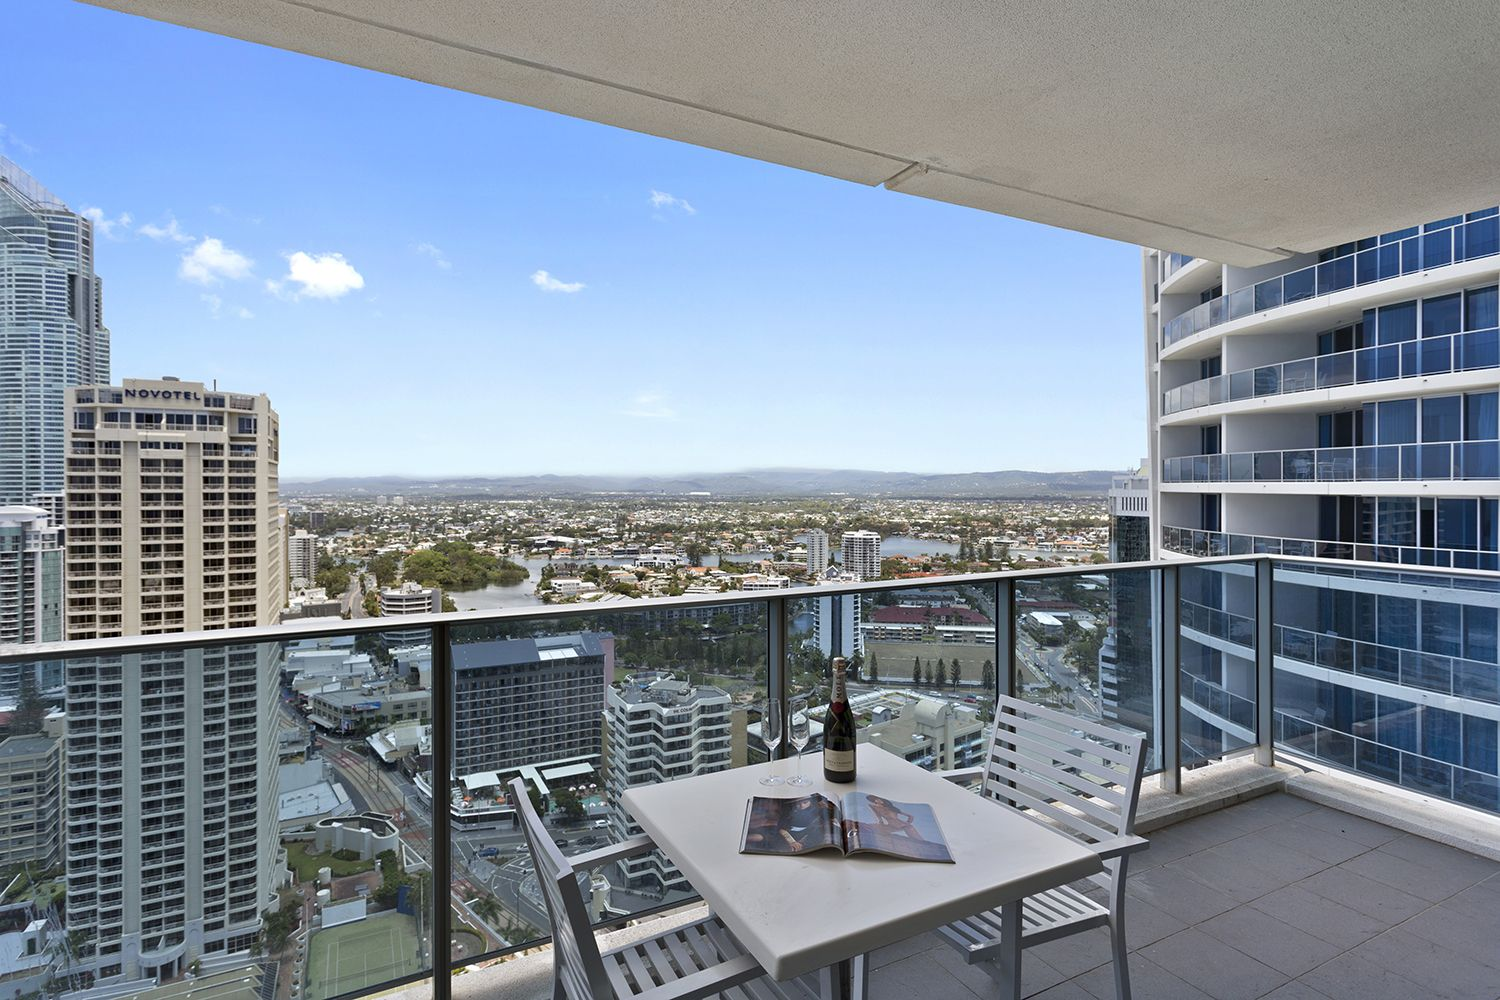 3113 'H-Residences' Surfers Paradise Blvd, Surfers Paradise QLD 4217, Image 1